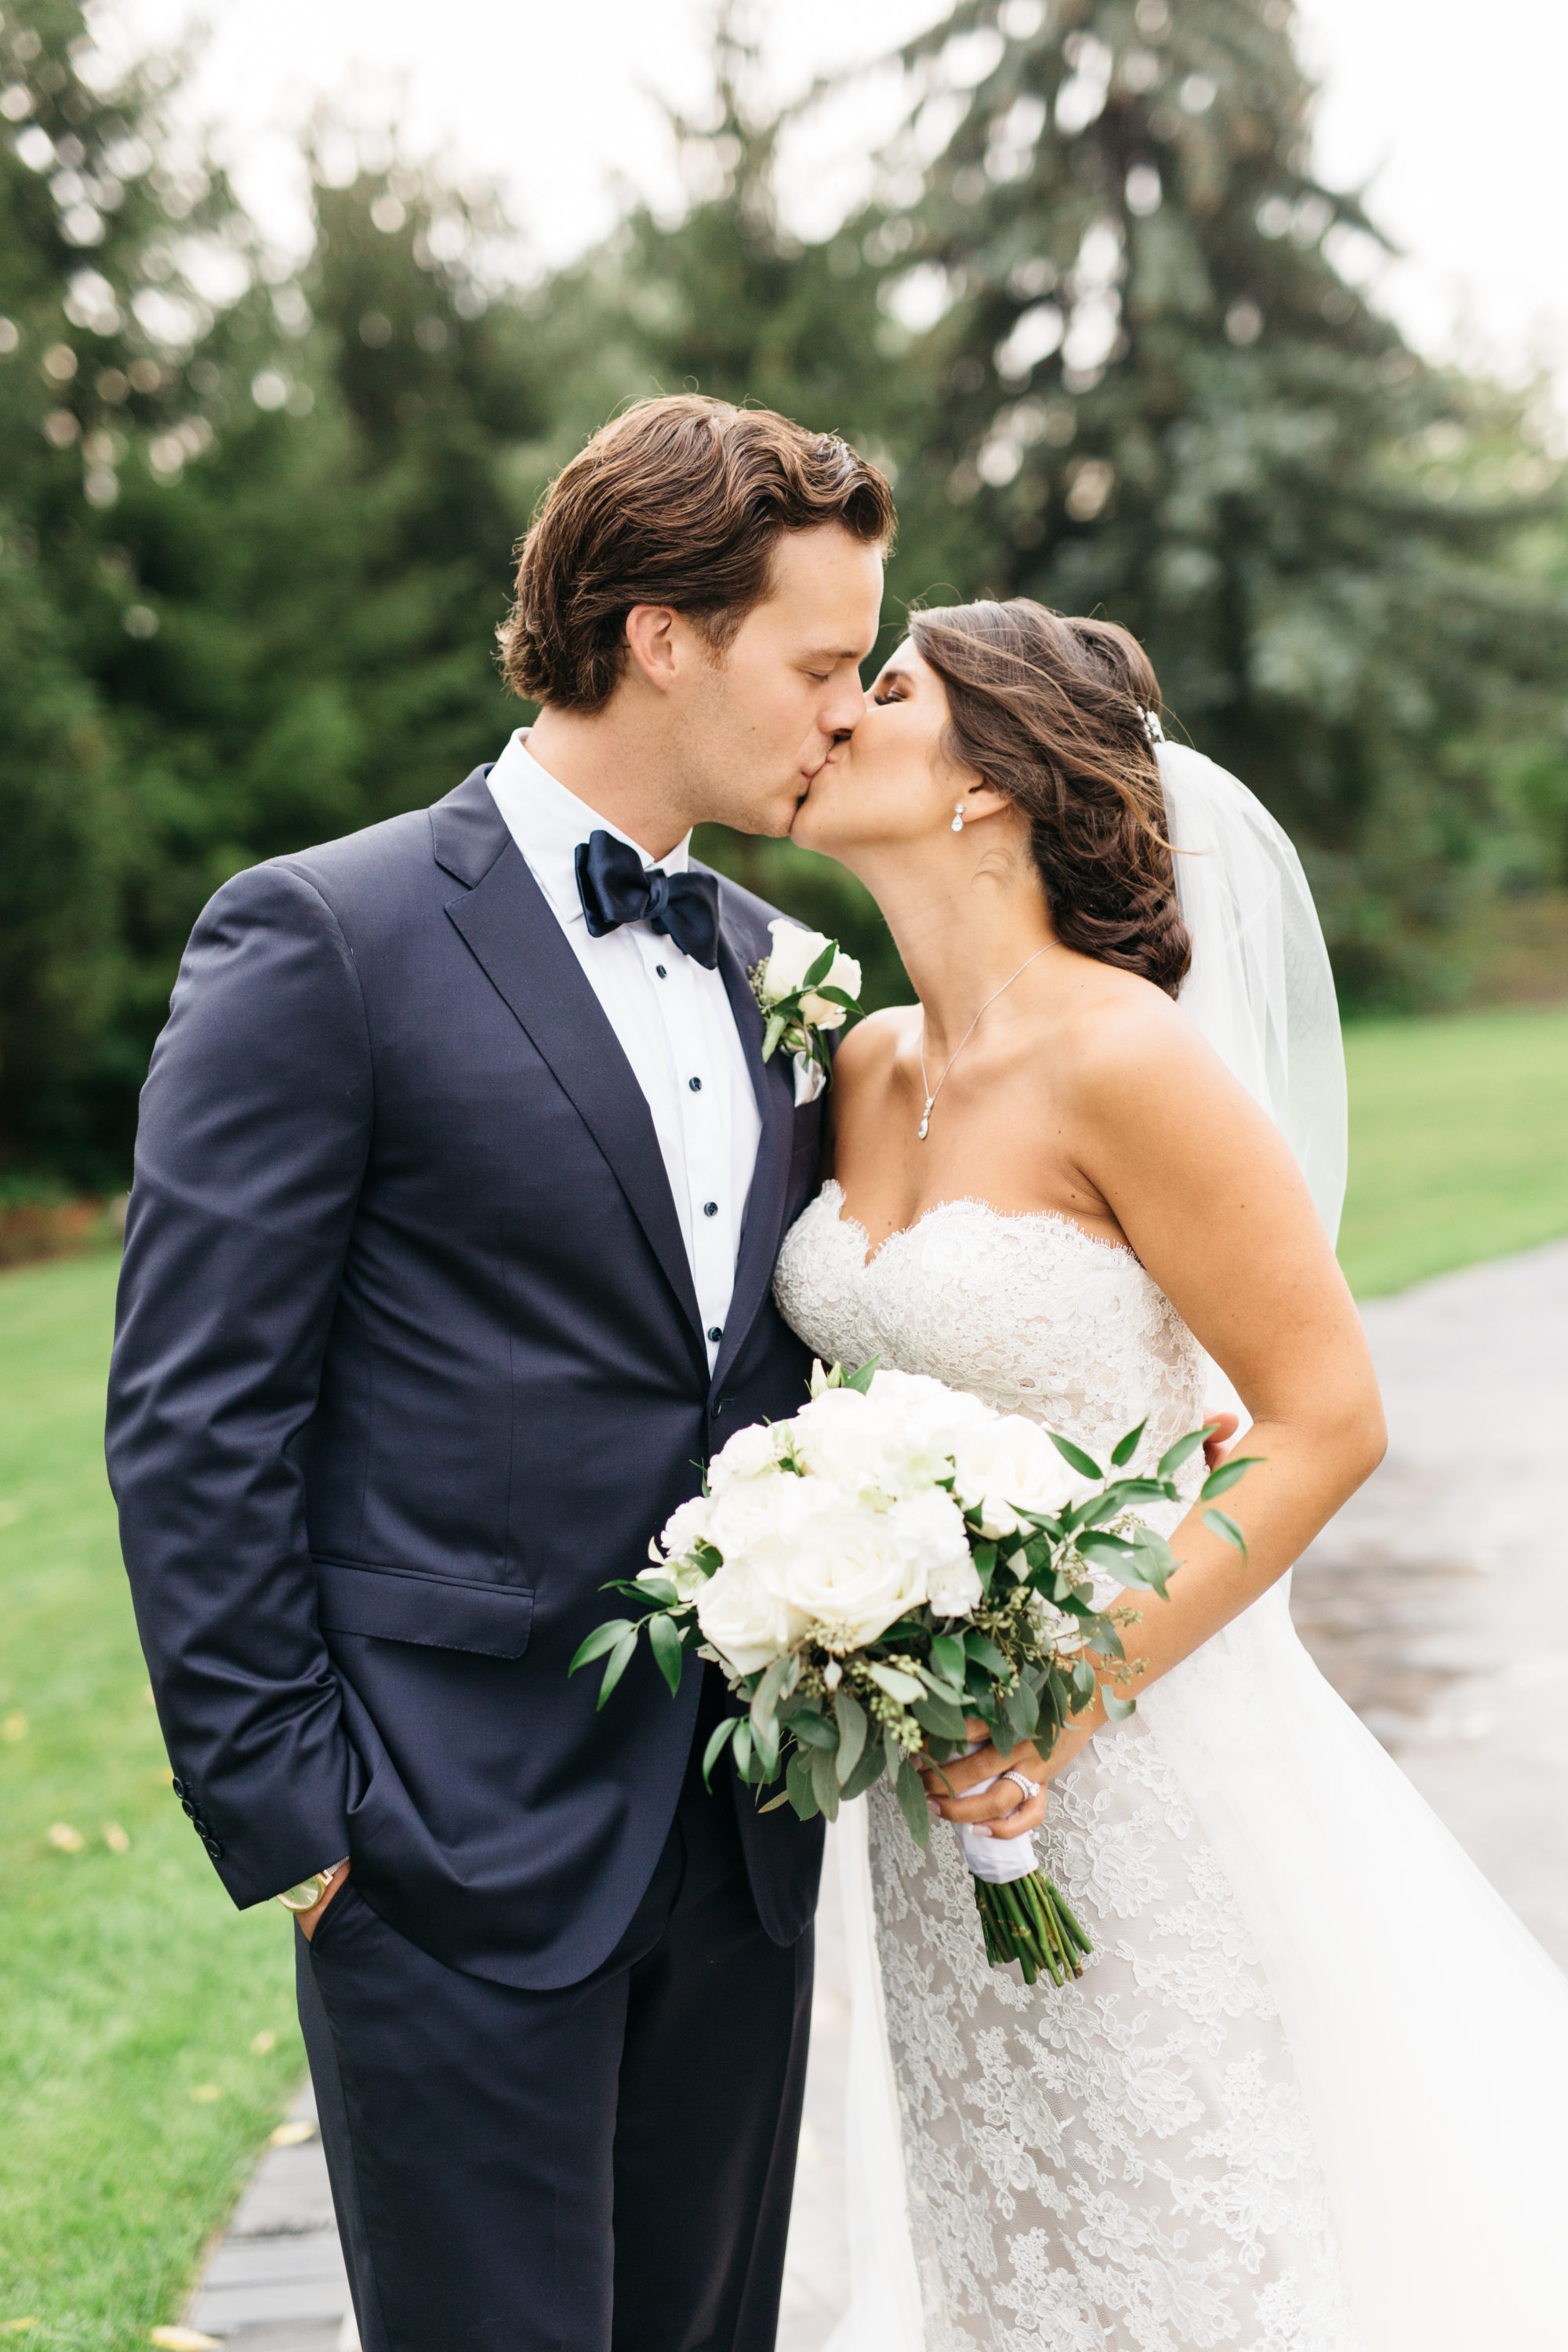 Bride and groom kissing during wedding photos